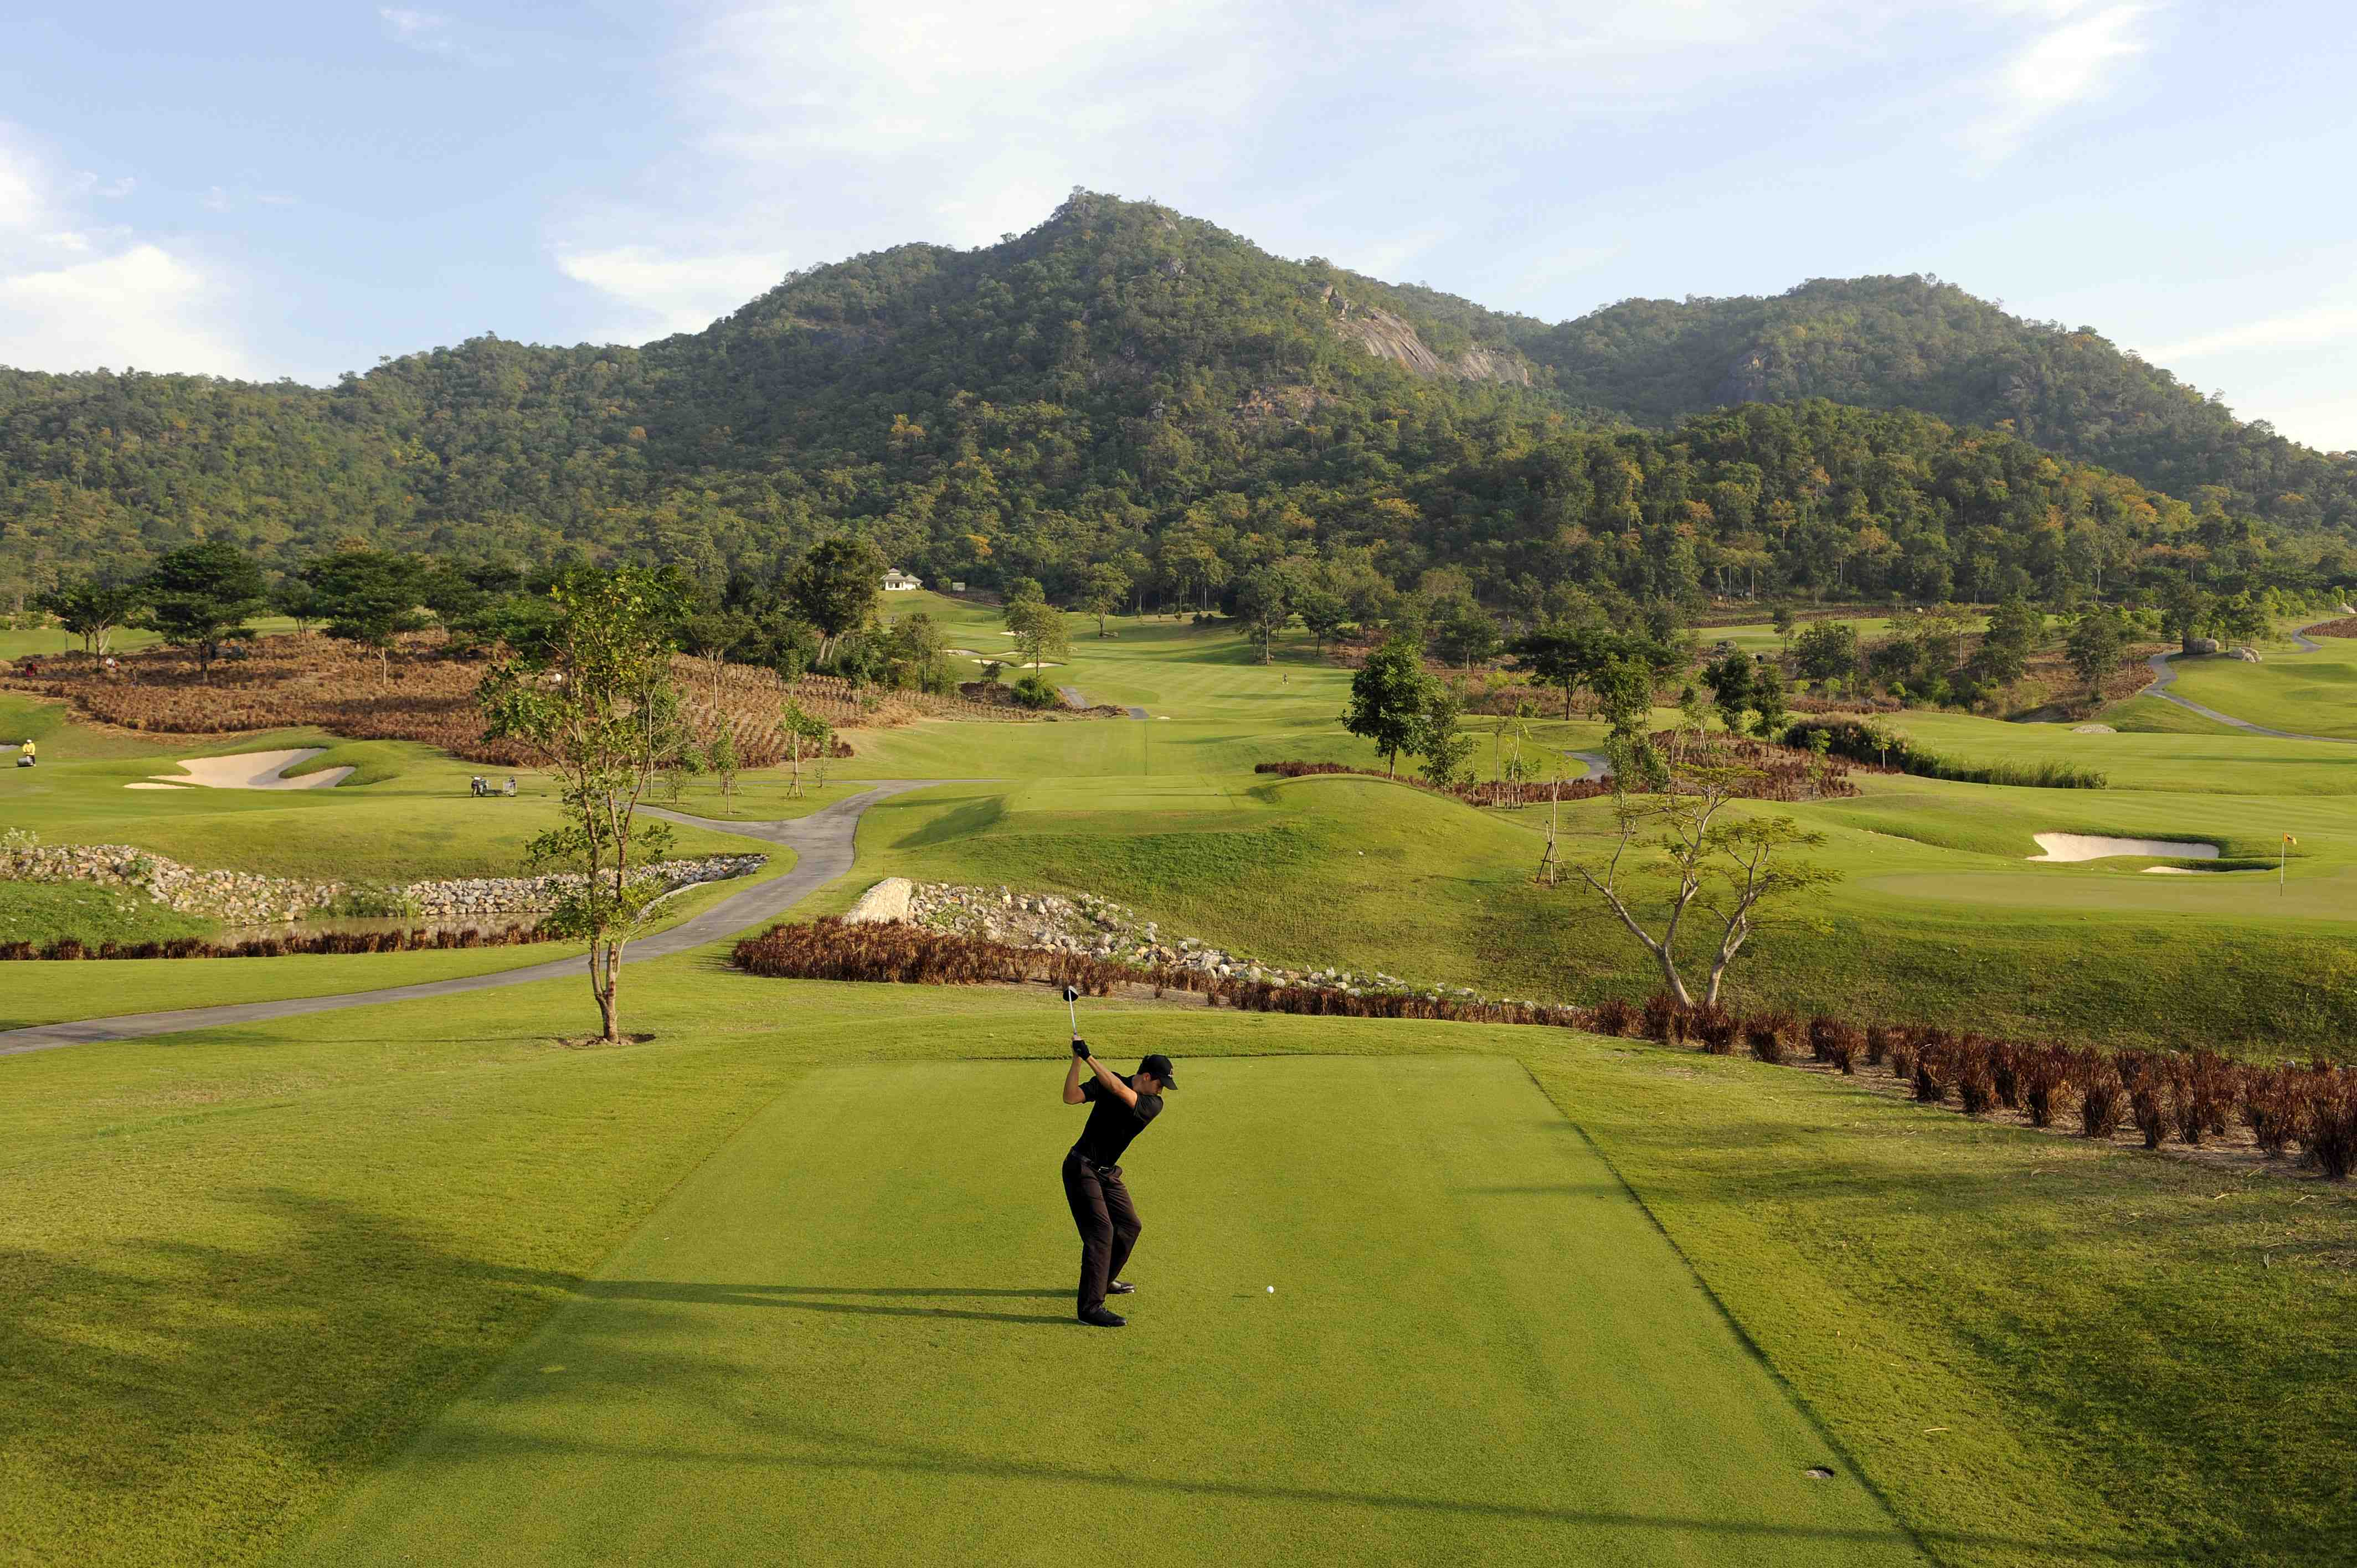 November 24, 2009, Black Mountain Golf Club, Hua Hin, Thailand. Mandatory credit: Richard Castka/Sportpixgolf.com